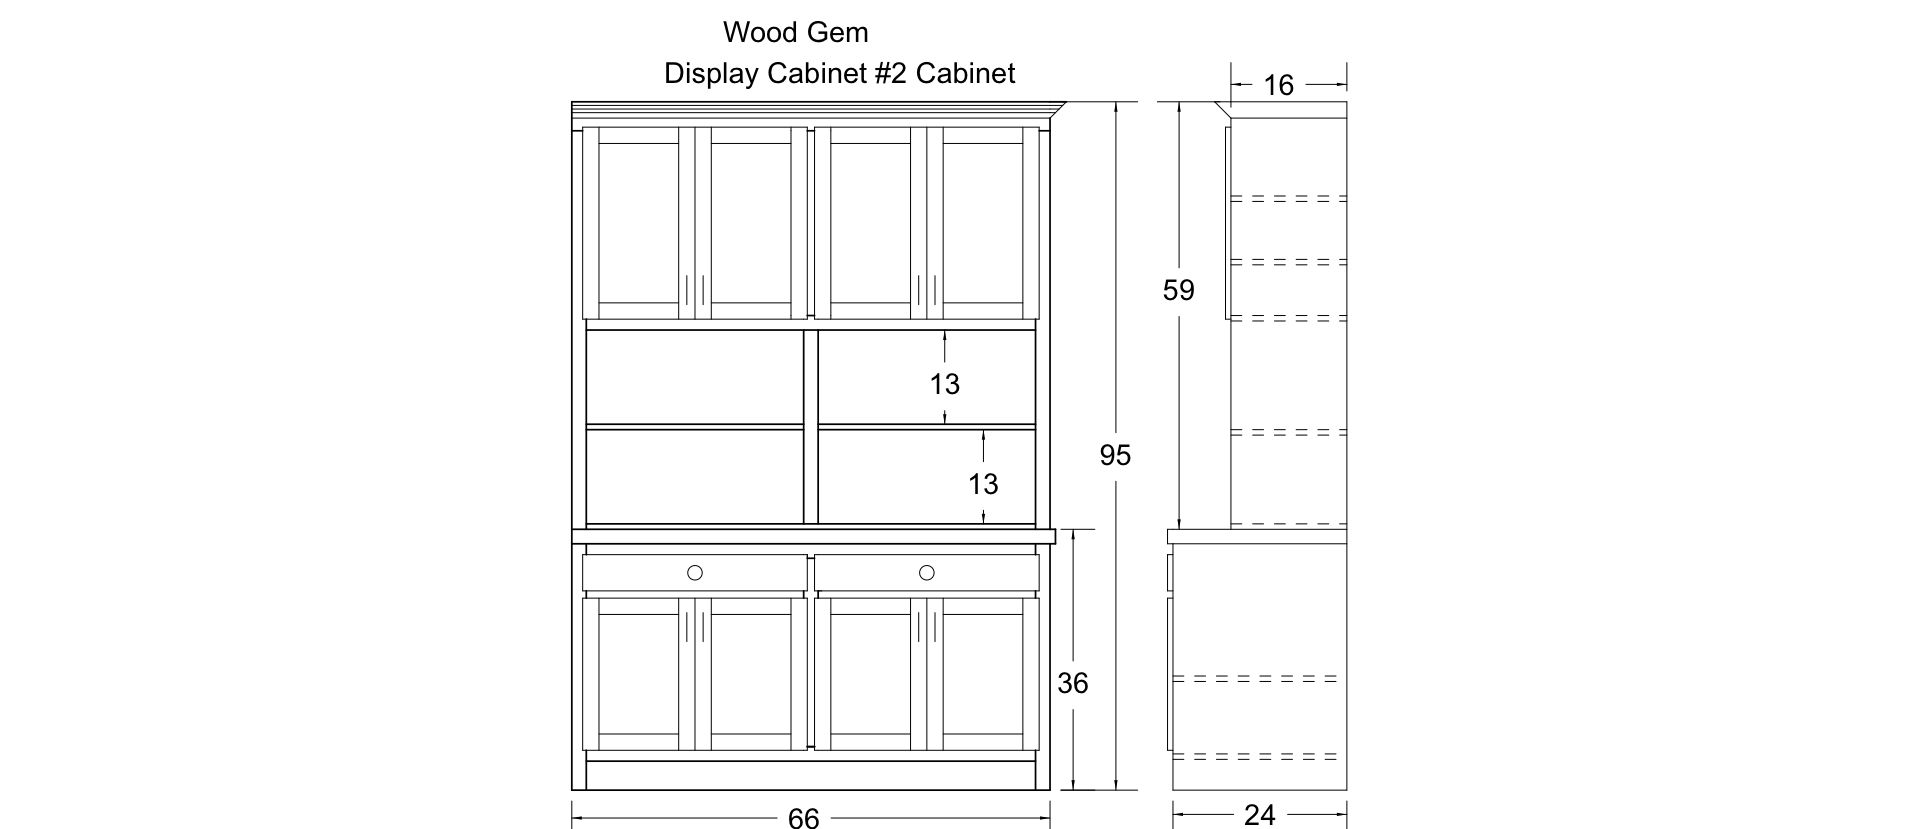 Display Cabinet #2.png